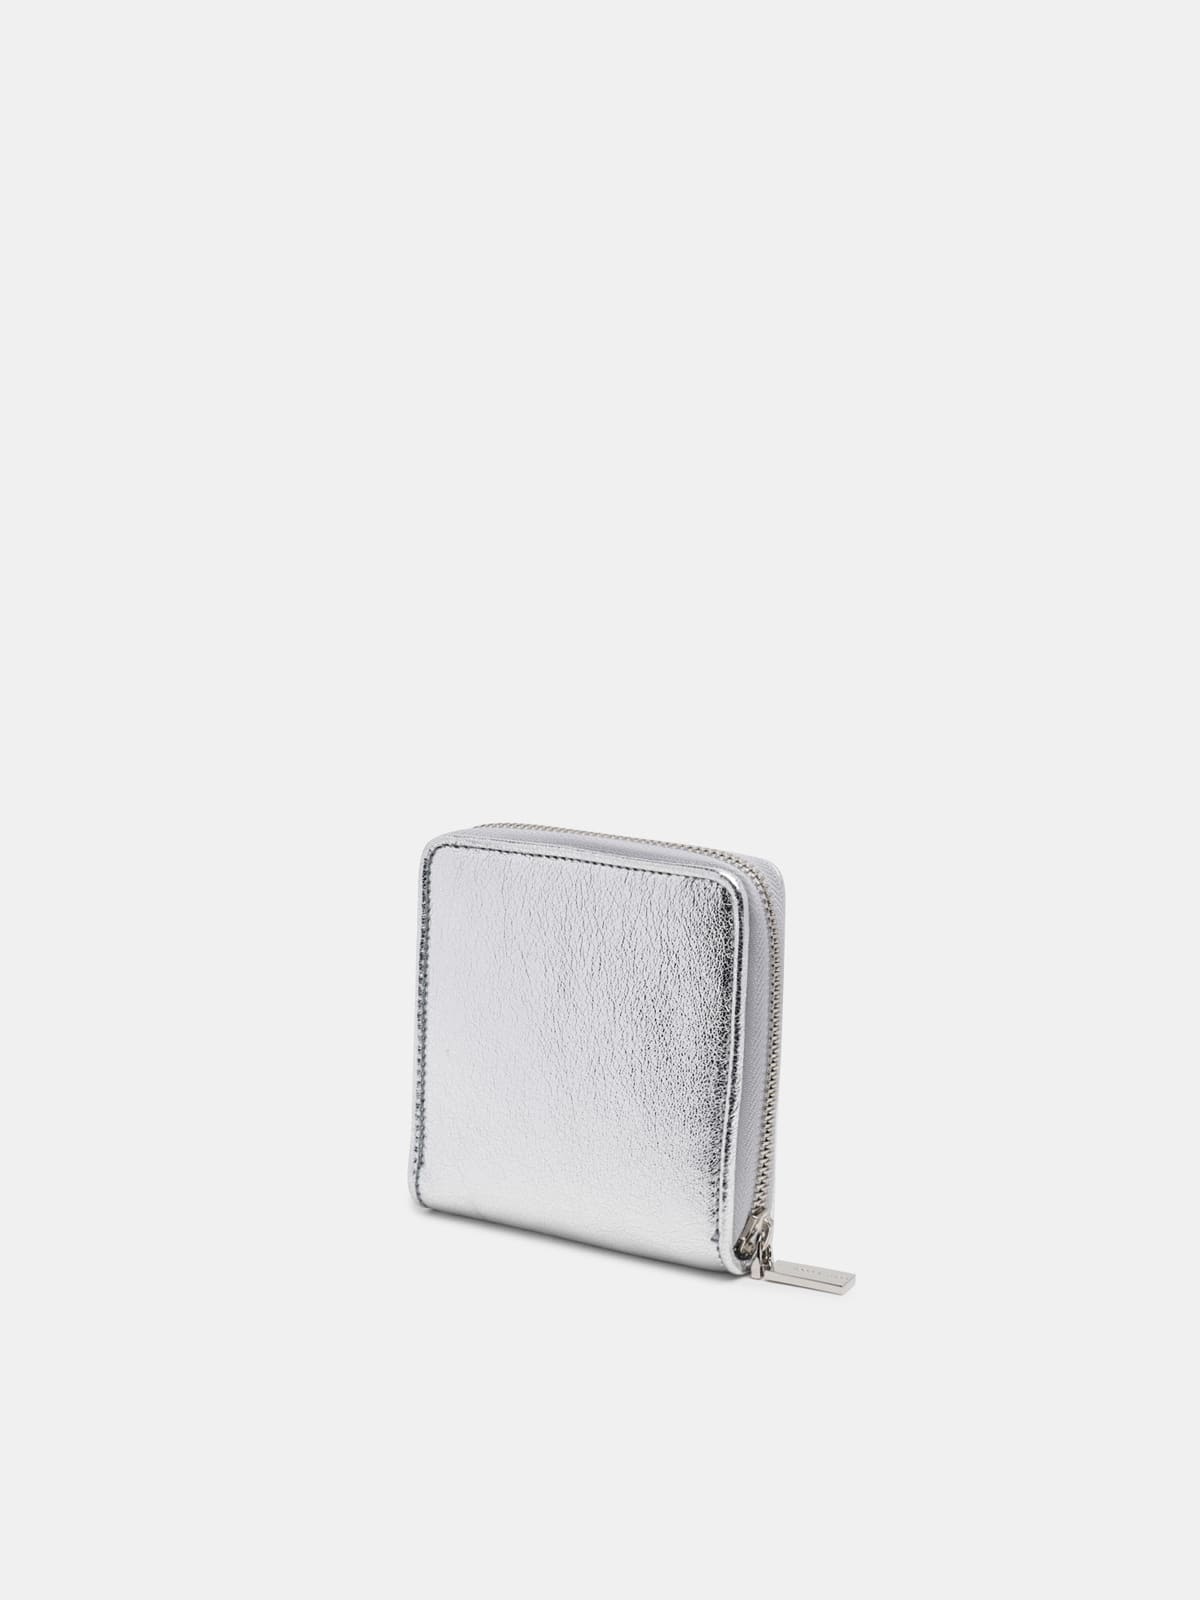 Medium silver Star Wallet